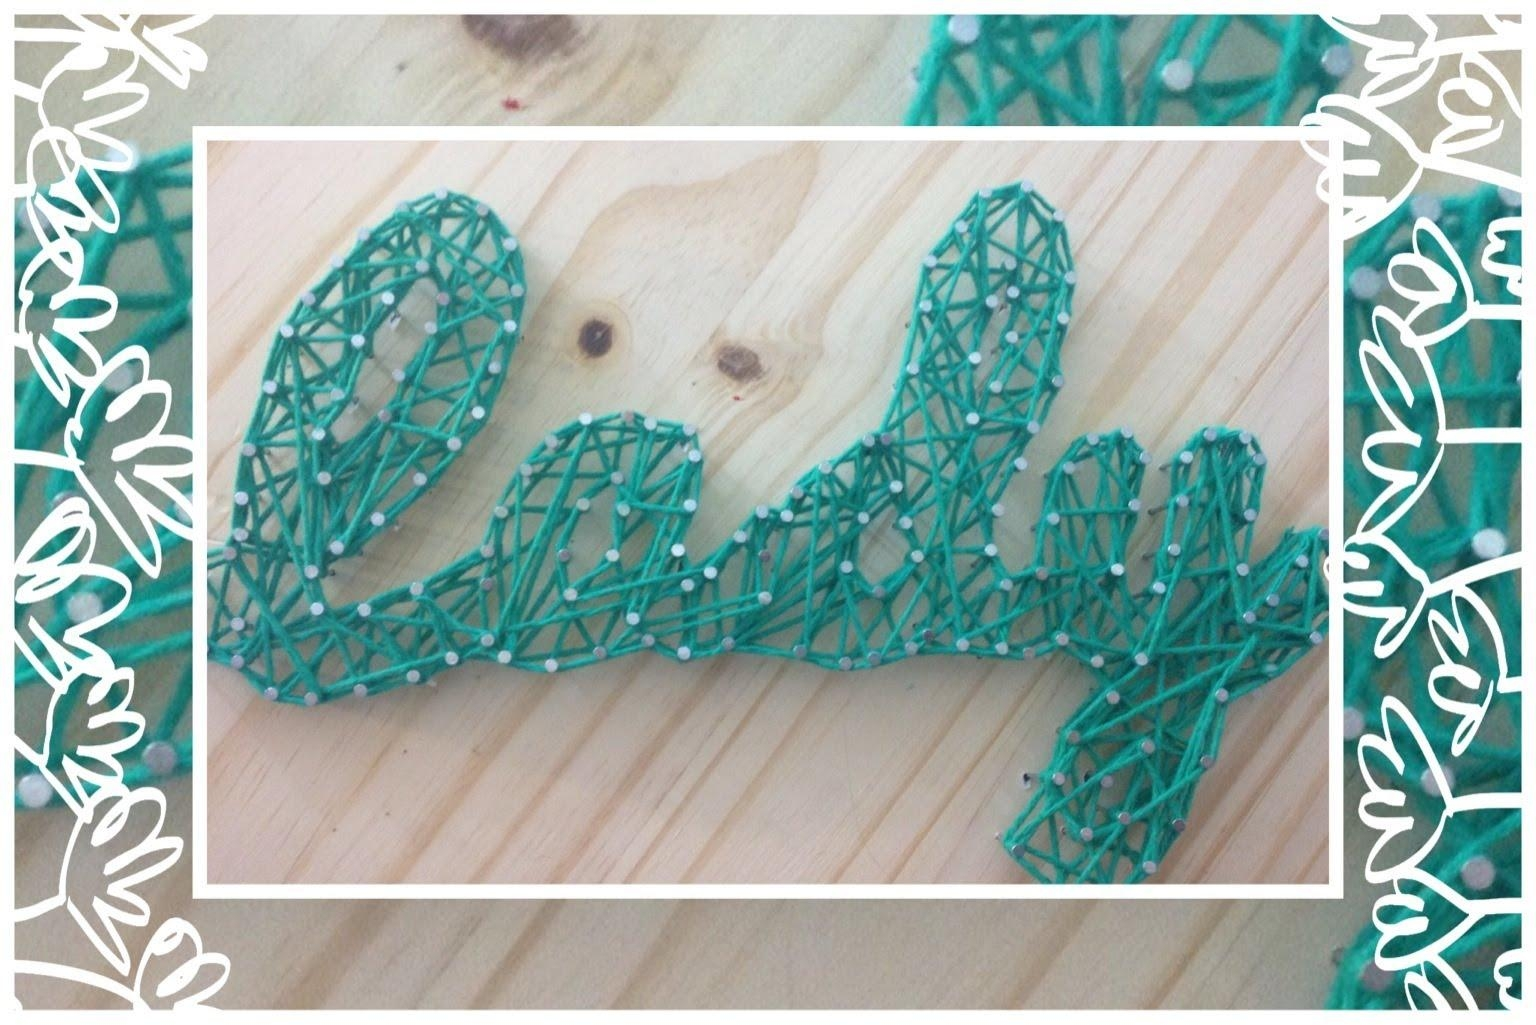 Diy Nail String Art Tutorial – Youtube Throughout Nail And Yarn Wall Art (Image 6 of 20)